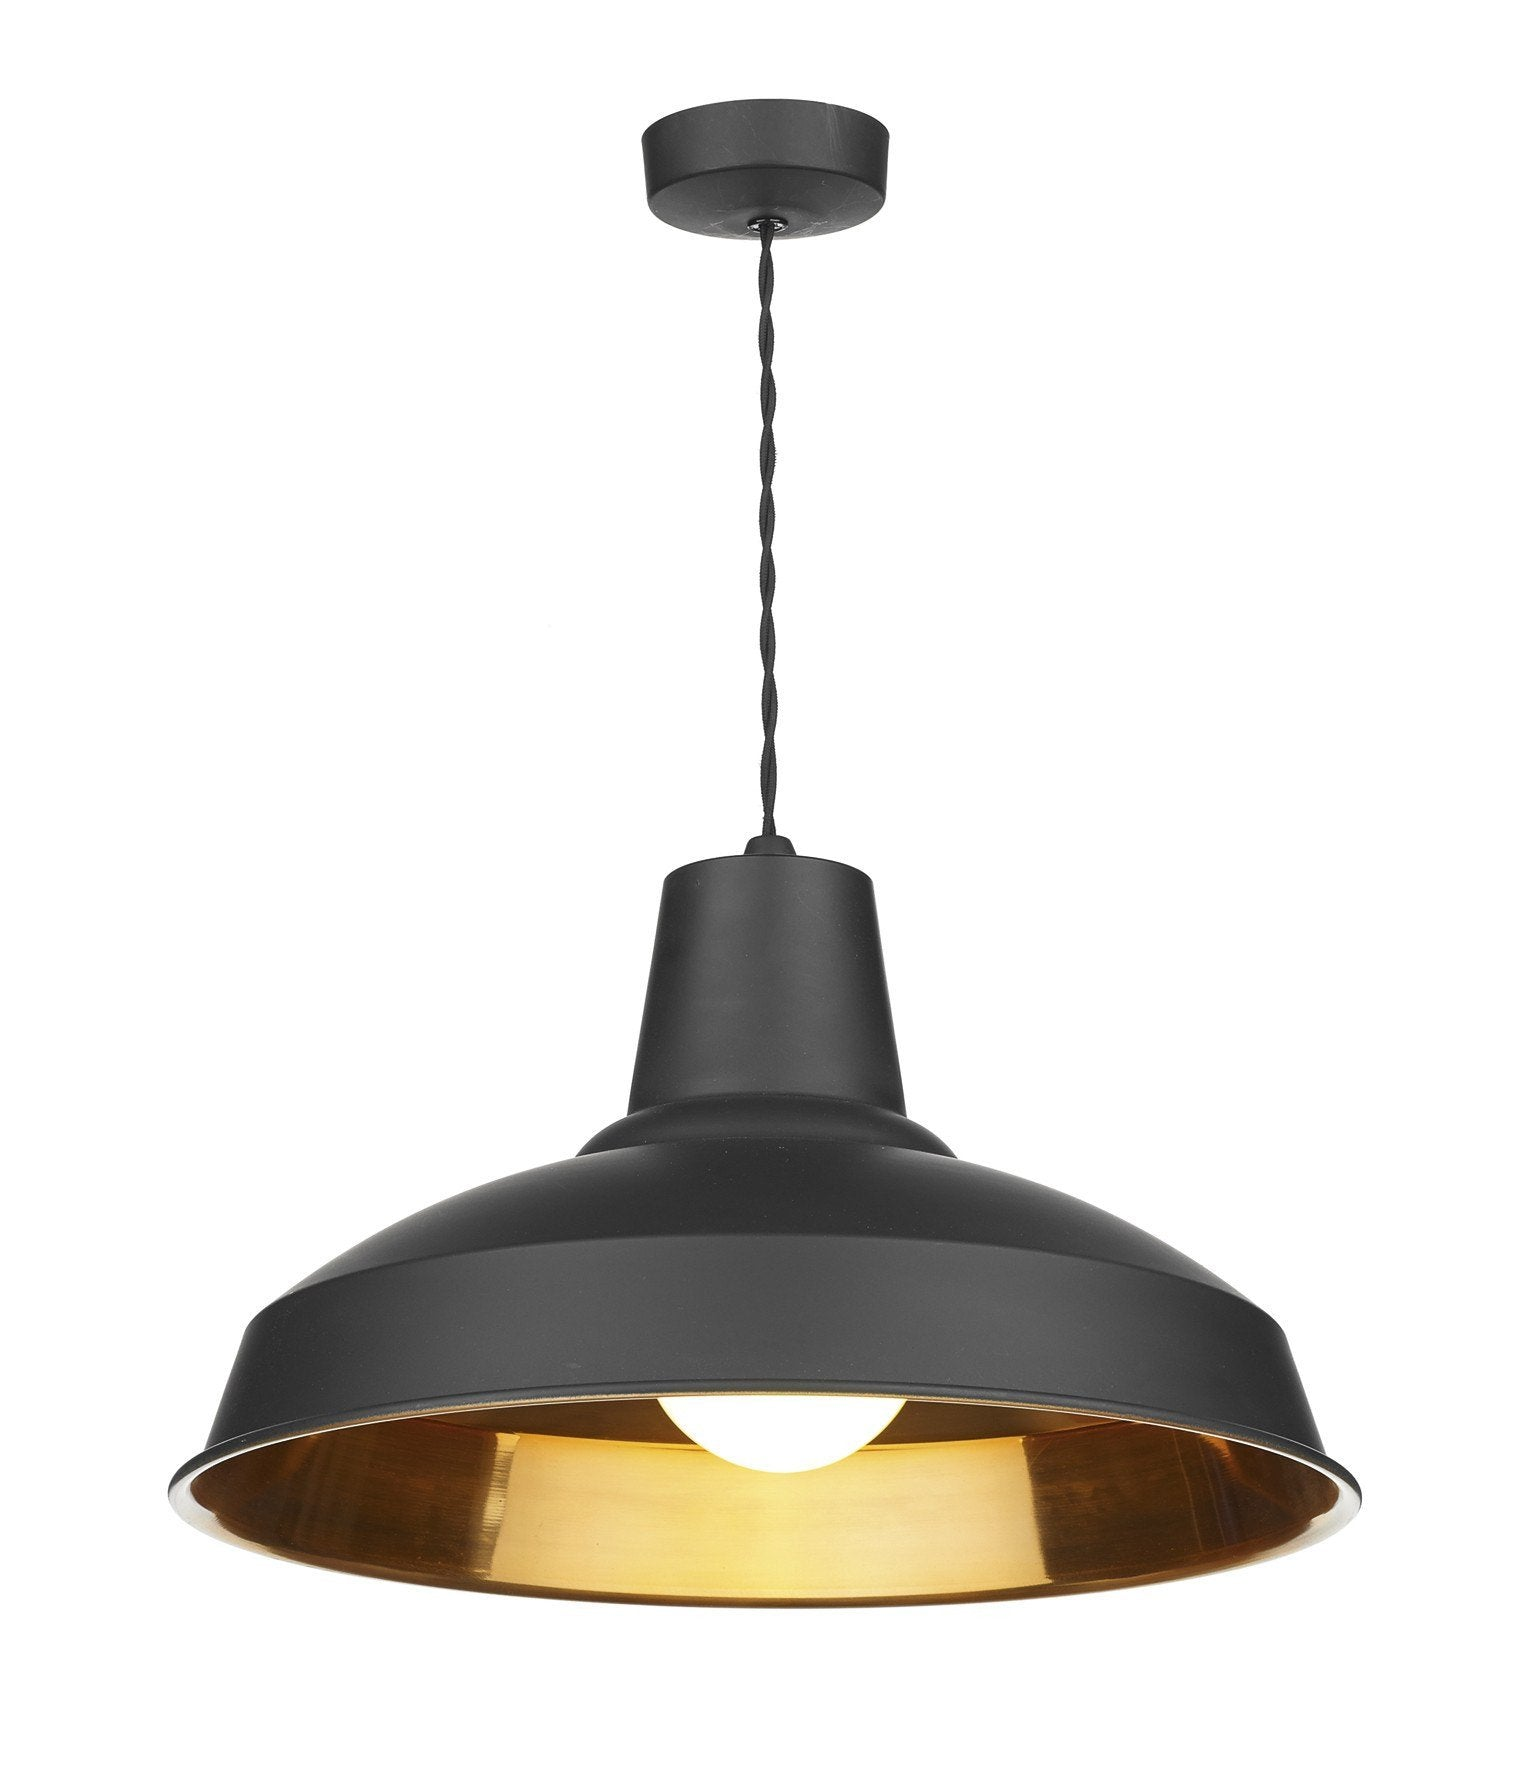 Reclamation Black Lamp Ceiling Light - London Lighting - 1